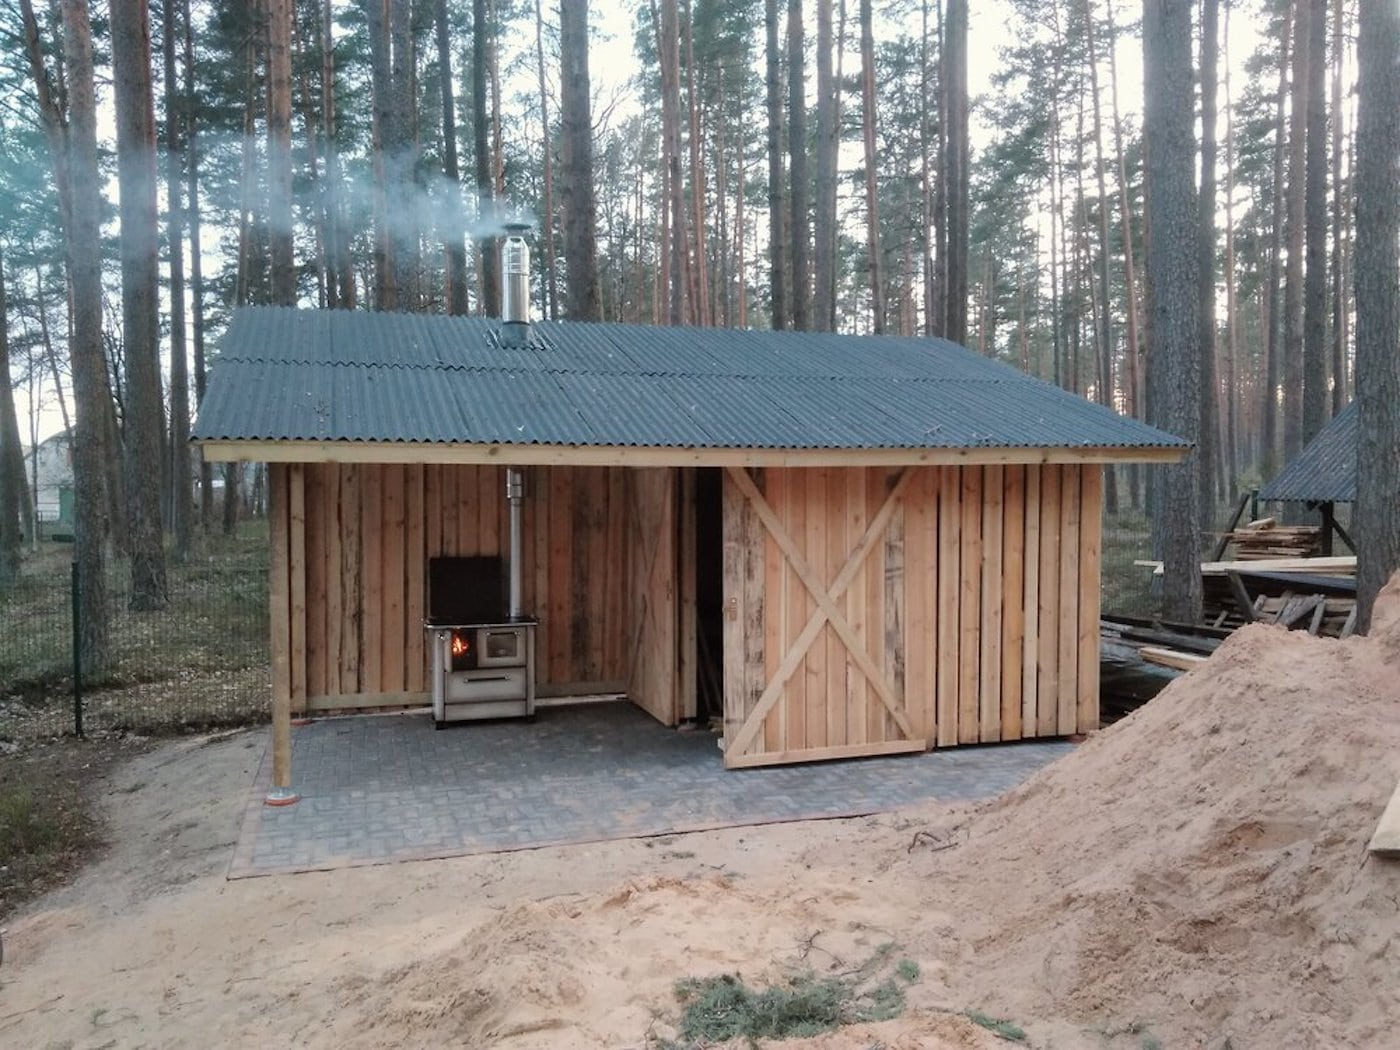 Timber shed with smoking chimney